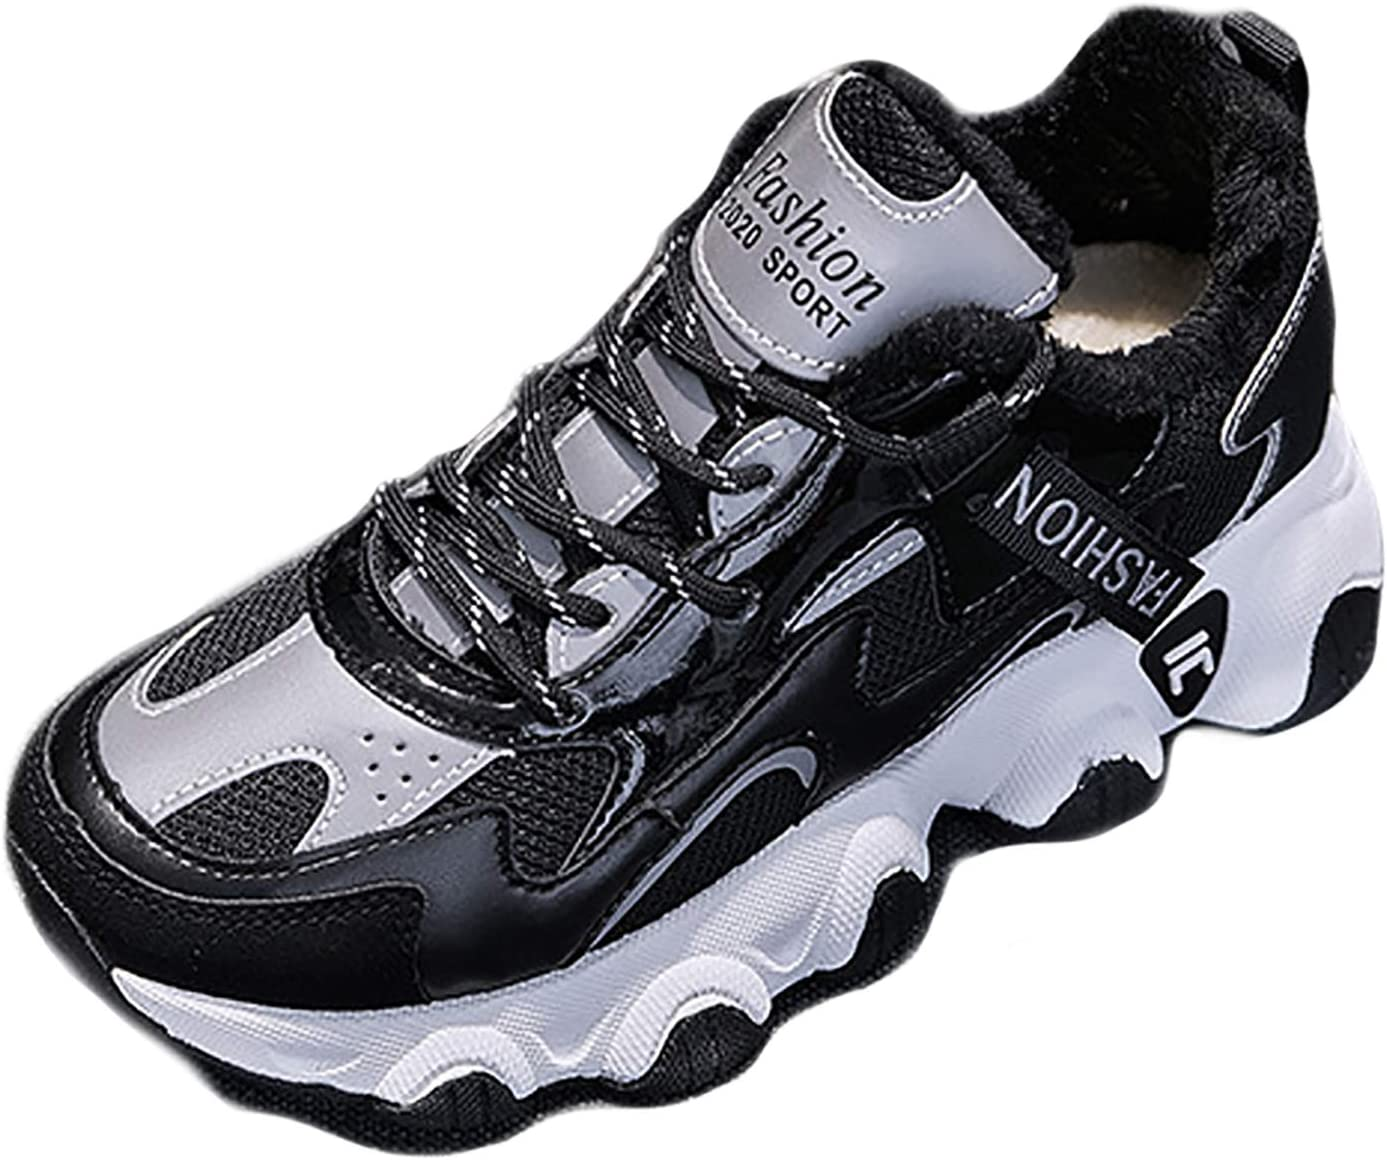 Women's Walking Industry No. 1 Trainers Hiking Breathable Trekking Outdoo Indefinitely Shoes